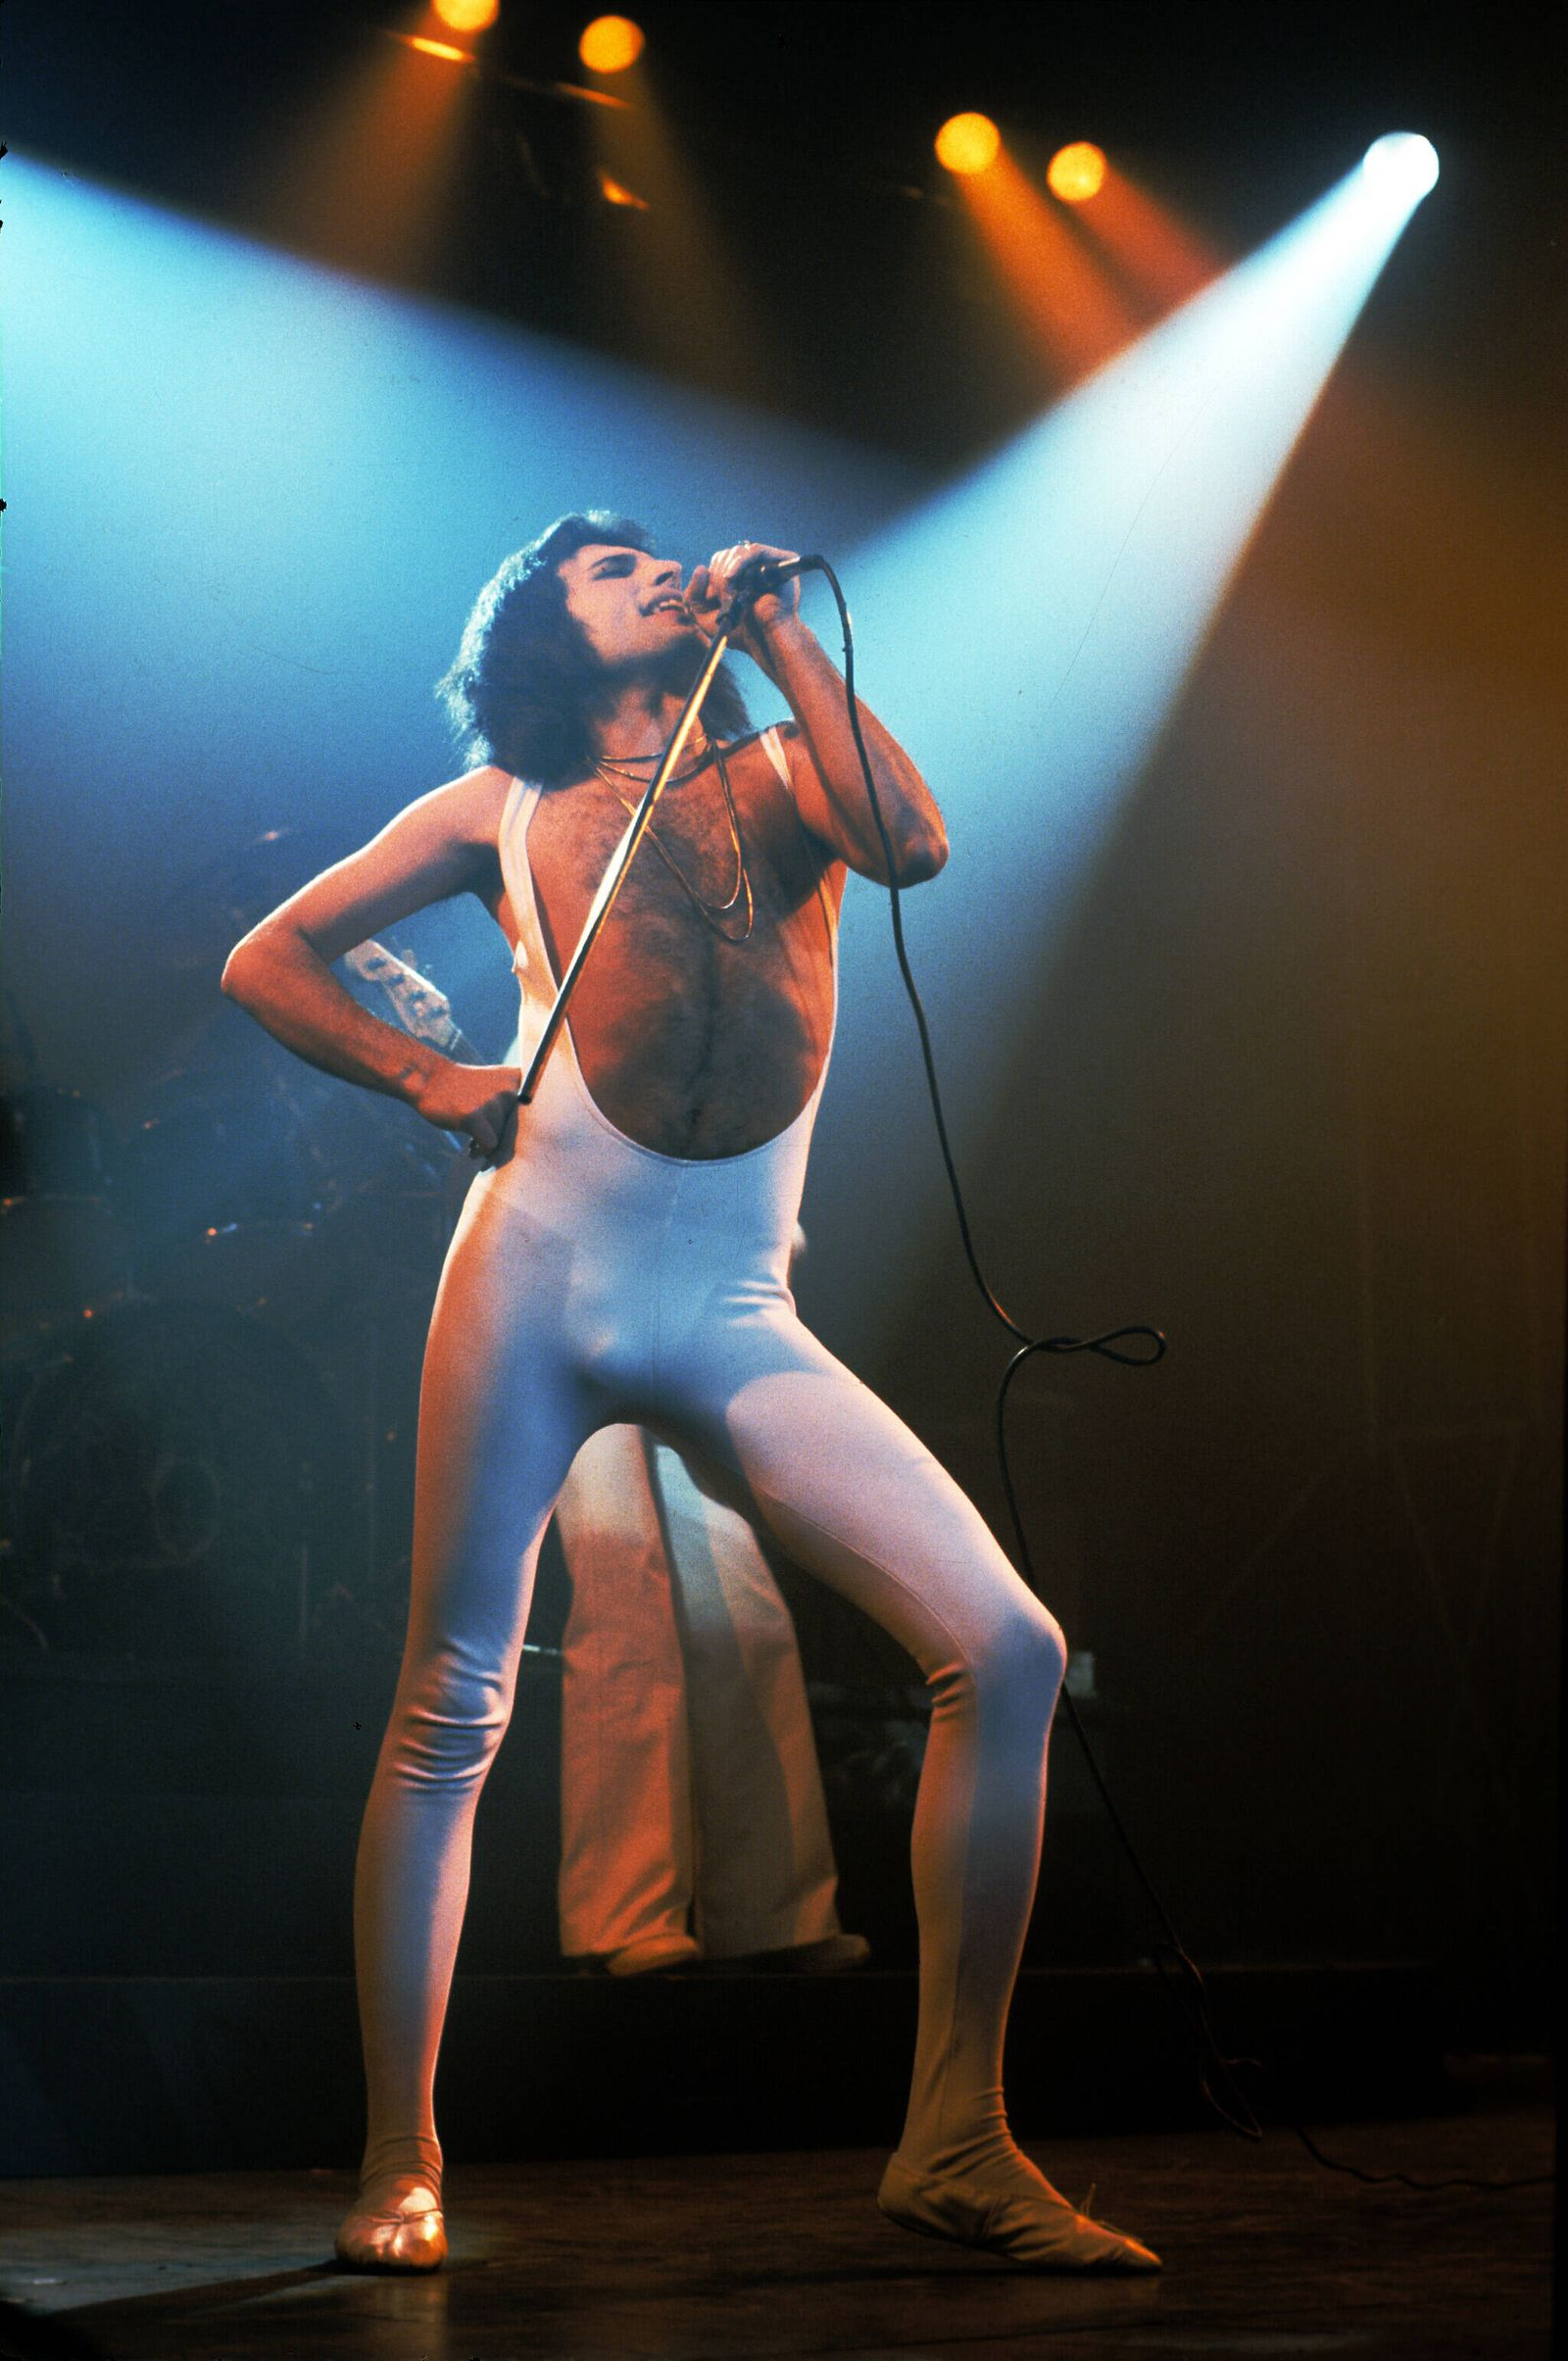 Freddie Mercury Freddie Mercury of Queen performs in London in 1976 PUBLICATIONxINxGERxSUIxAUTxONLY Copyright: xAnwarxHu